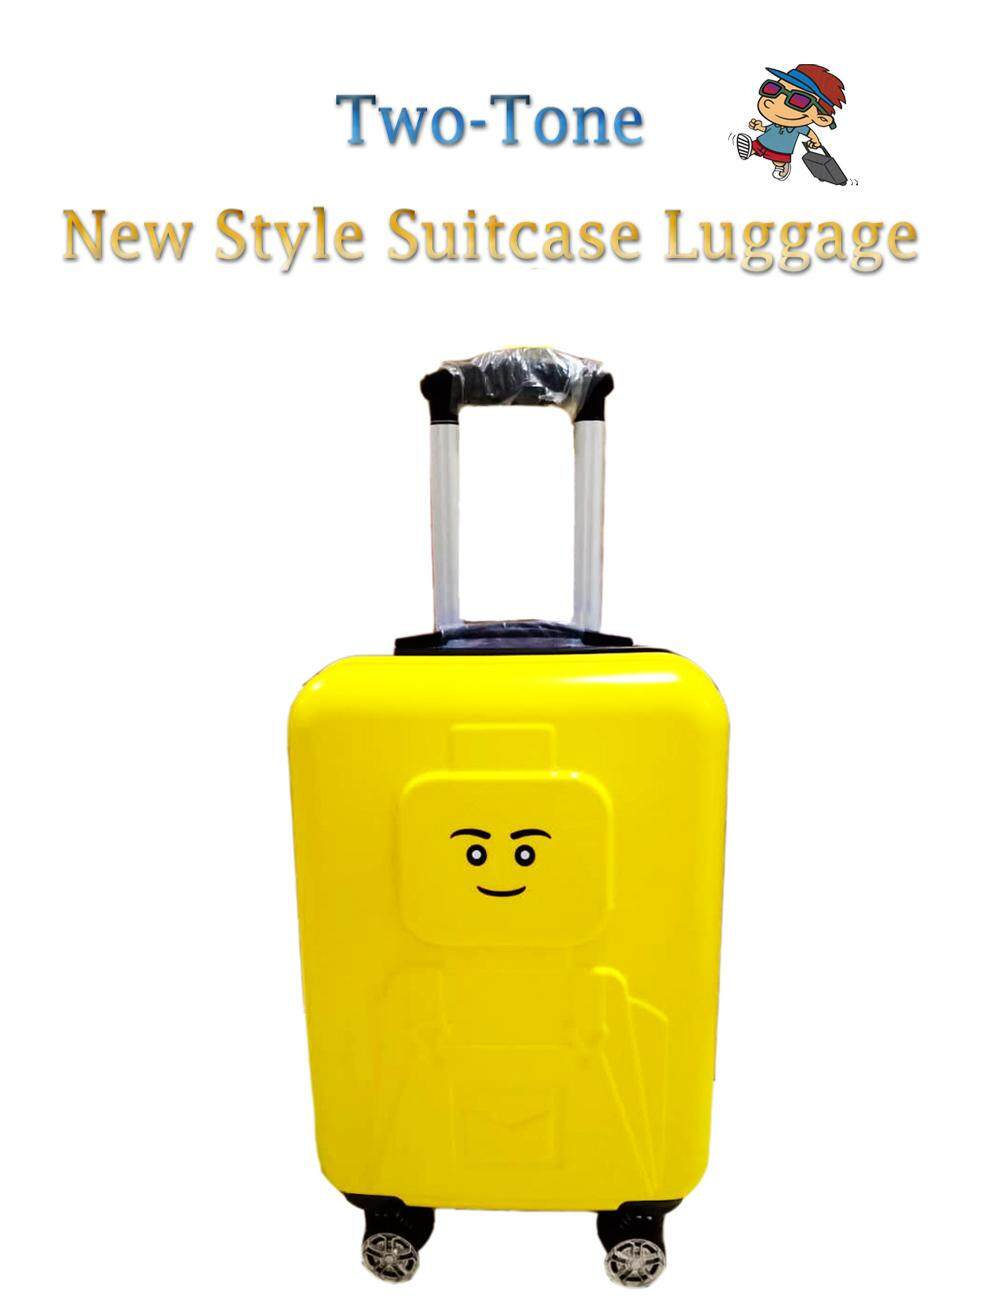 20 inch High Quality Hand Carry Two-Tone New Style Suitcase Luggage With Keylock